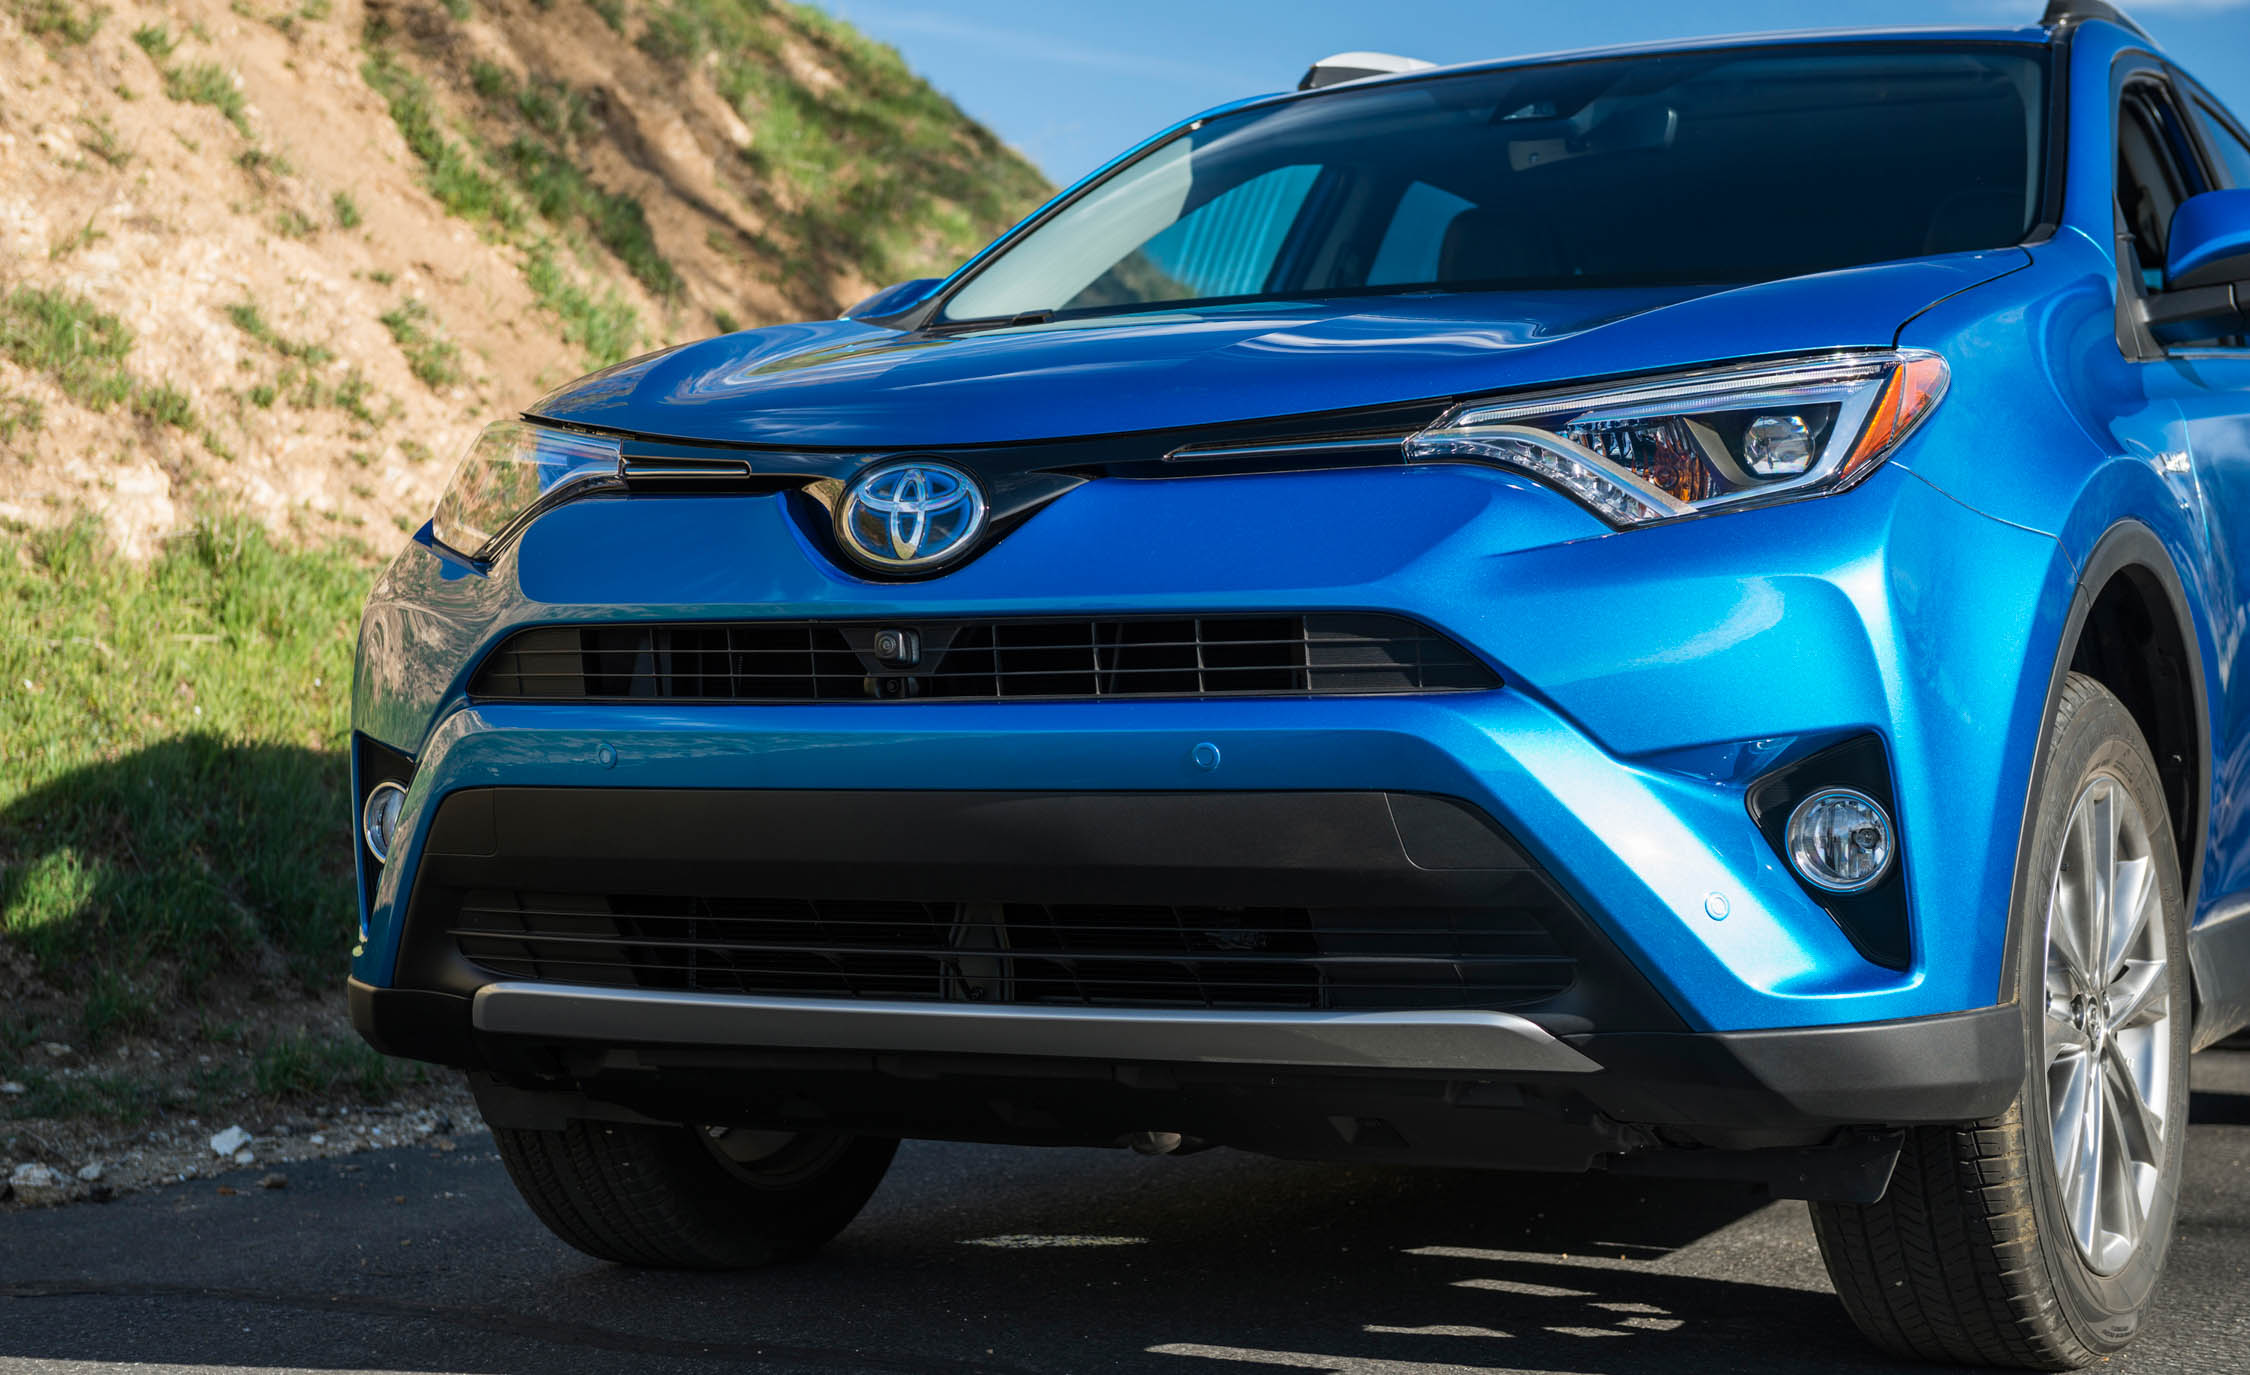 2016 Toyota Rav4 Hybrid Exterior Front End (Photo 6 of 26)